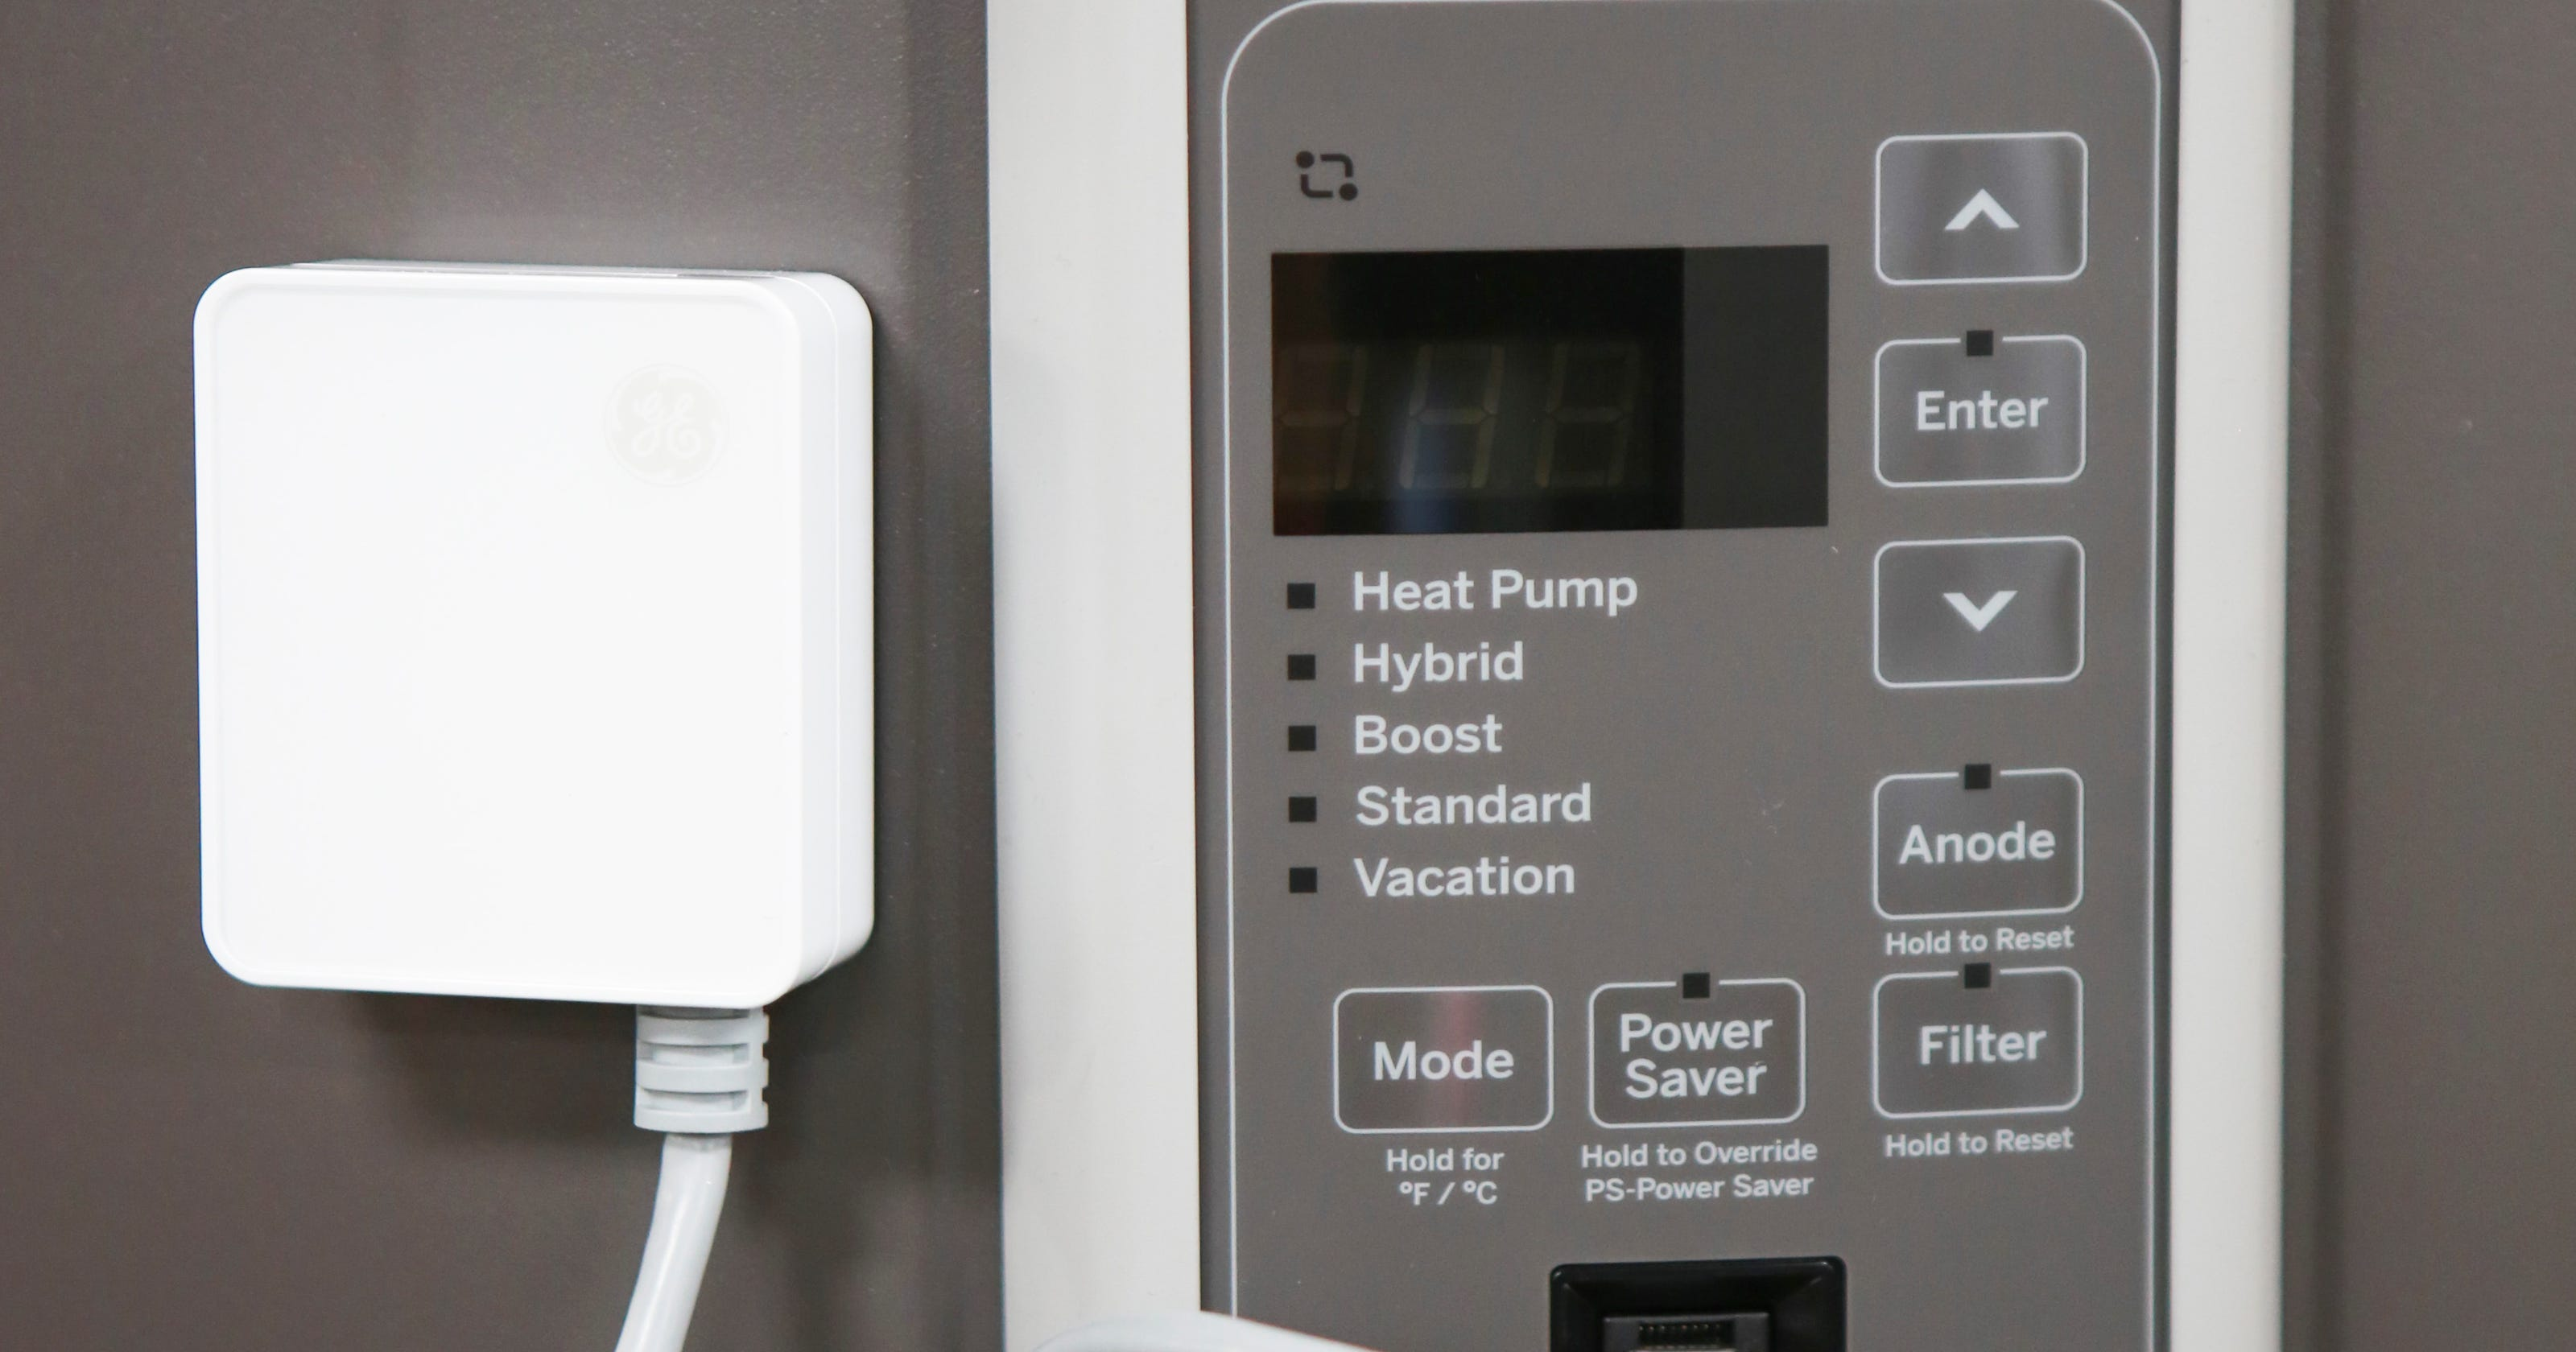 GE app makes talking to your appliances easier